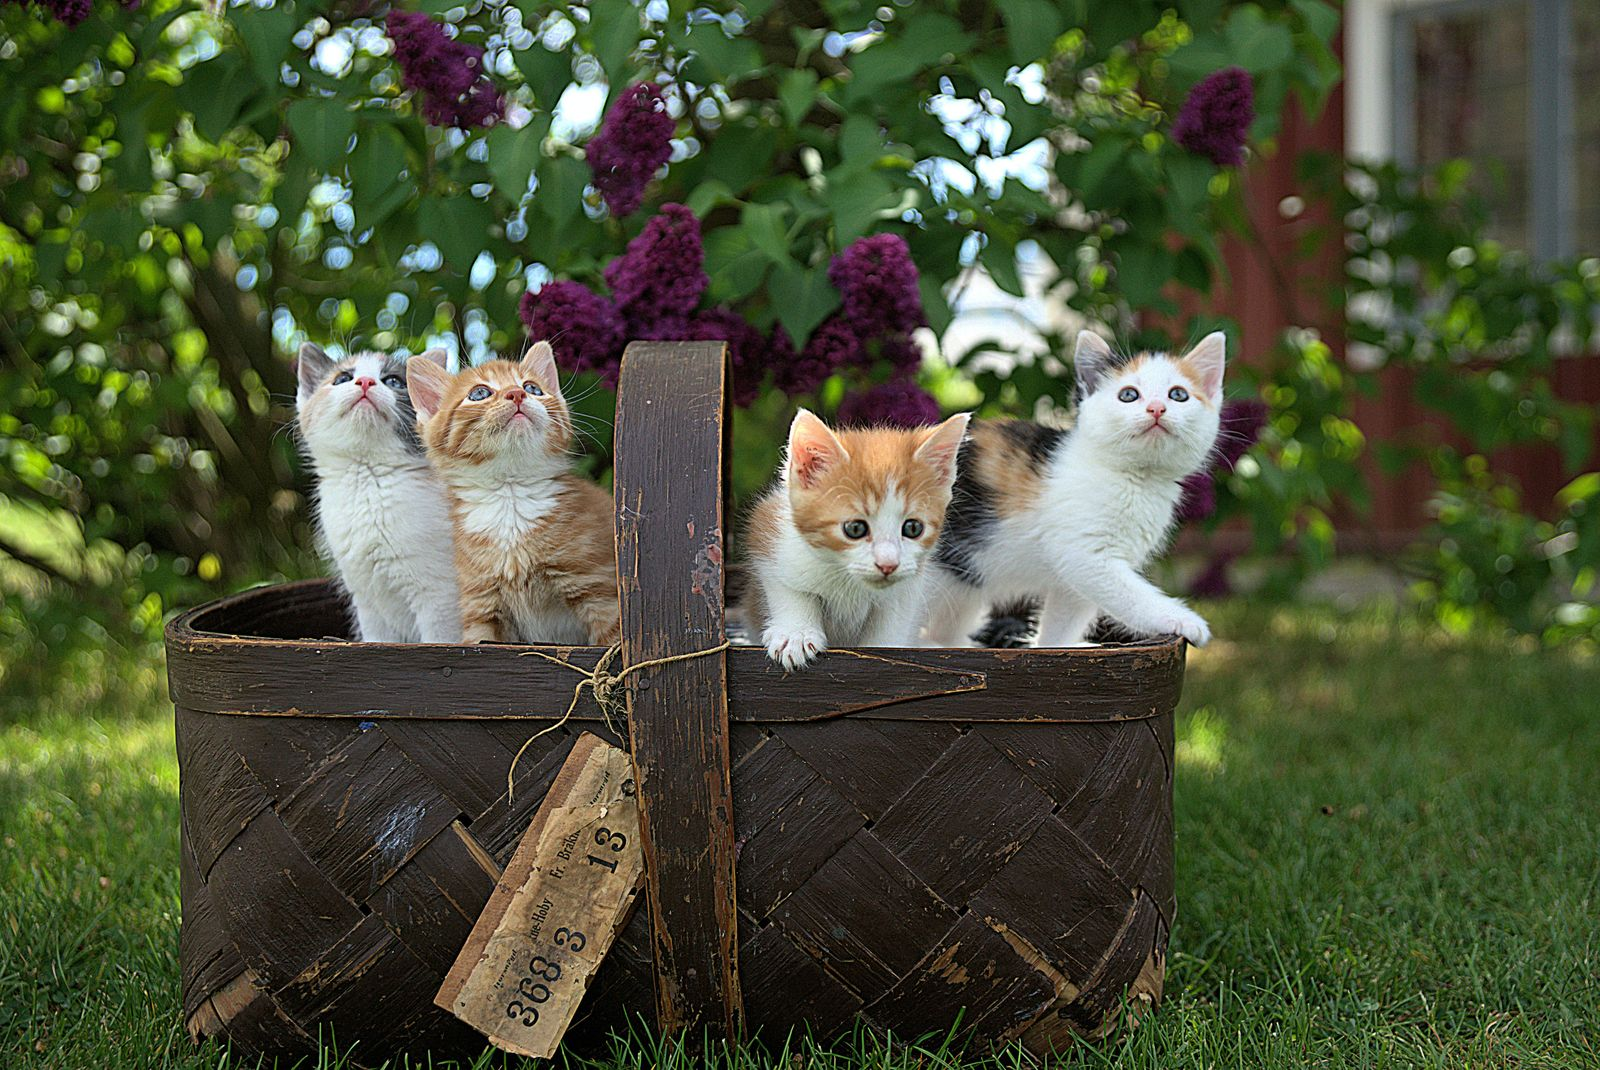 What type of cat should I get? - Cute kittens in a wood basket